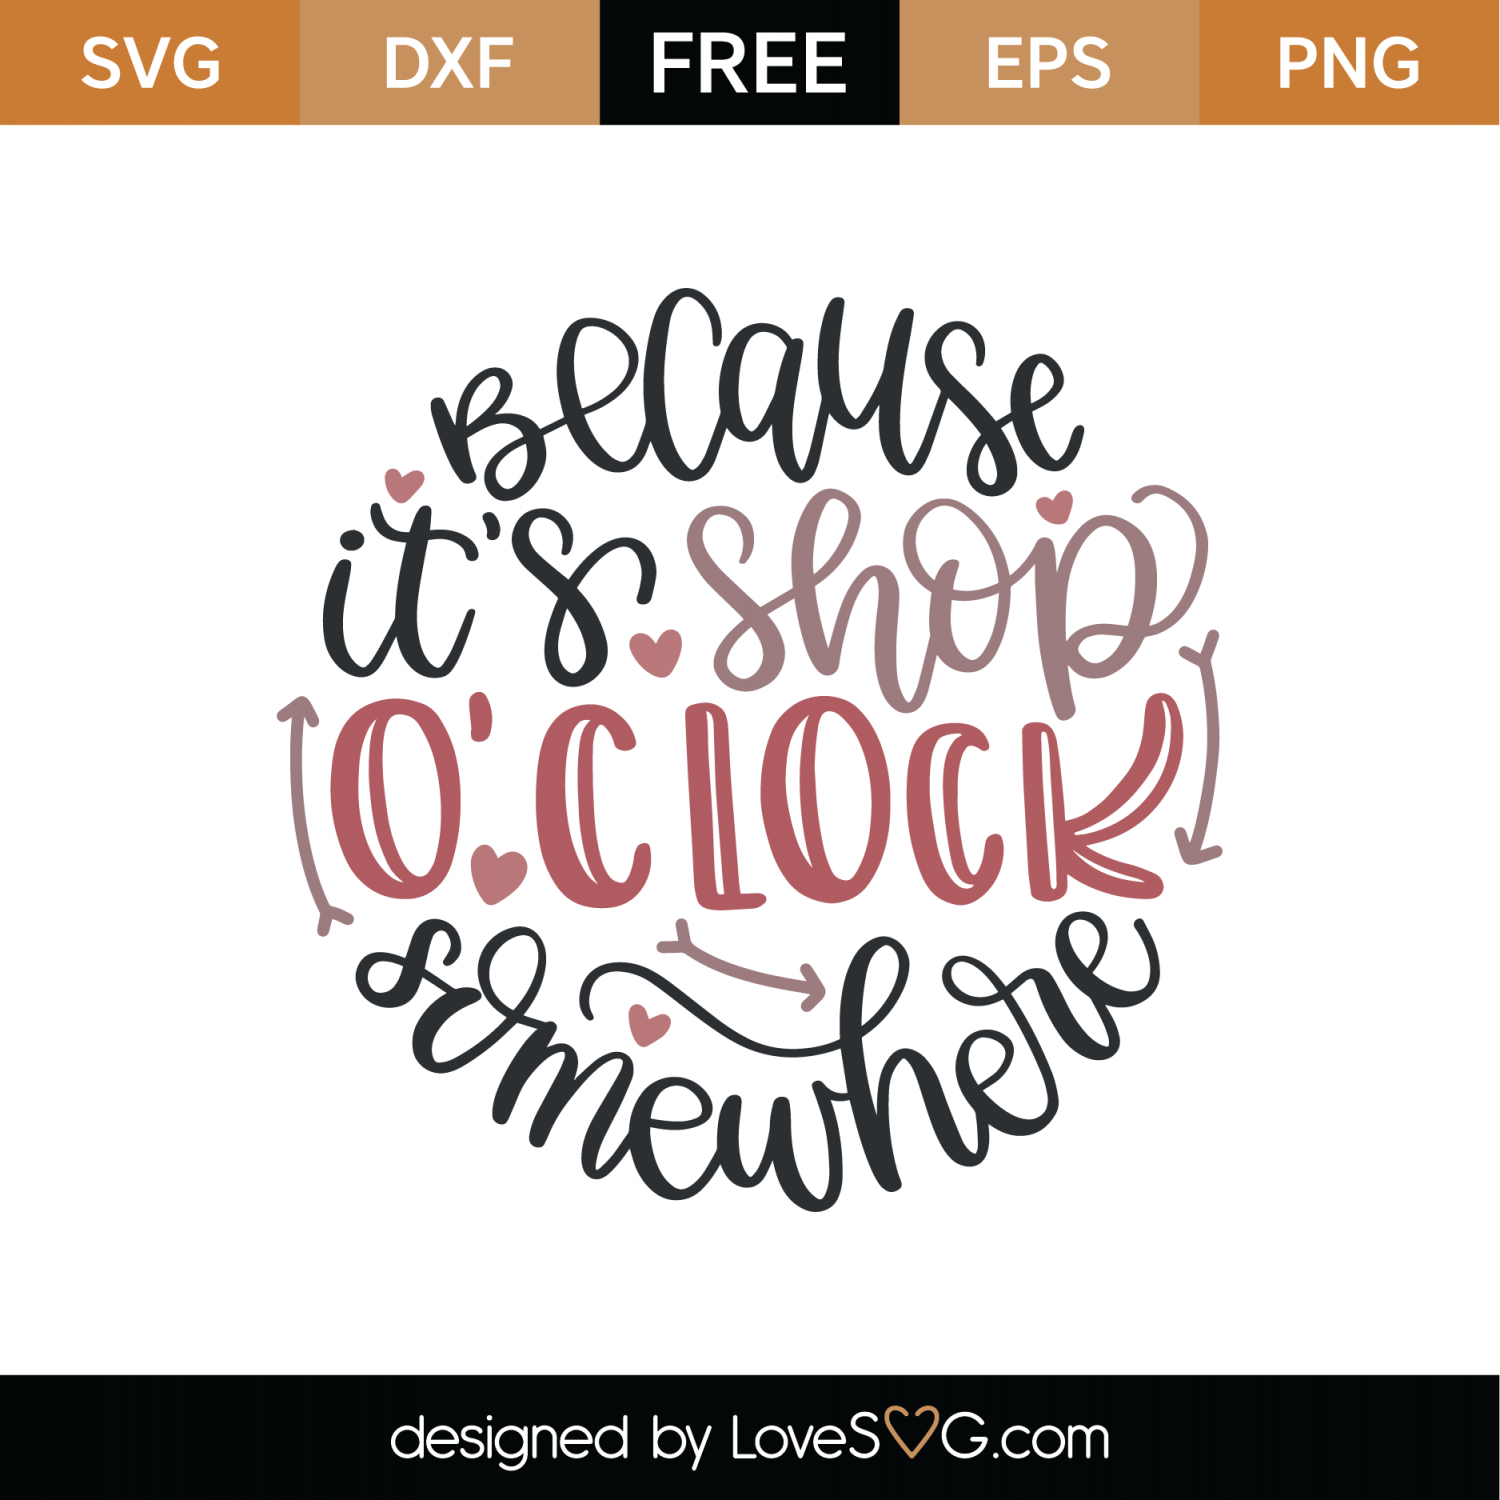 Free Because It's Shop O'clock Somewhere SVG Cut File